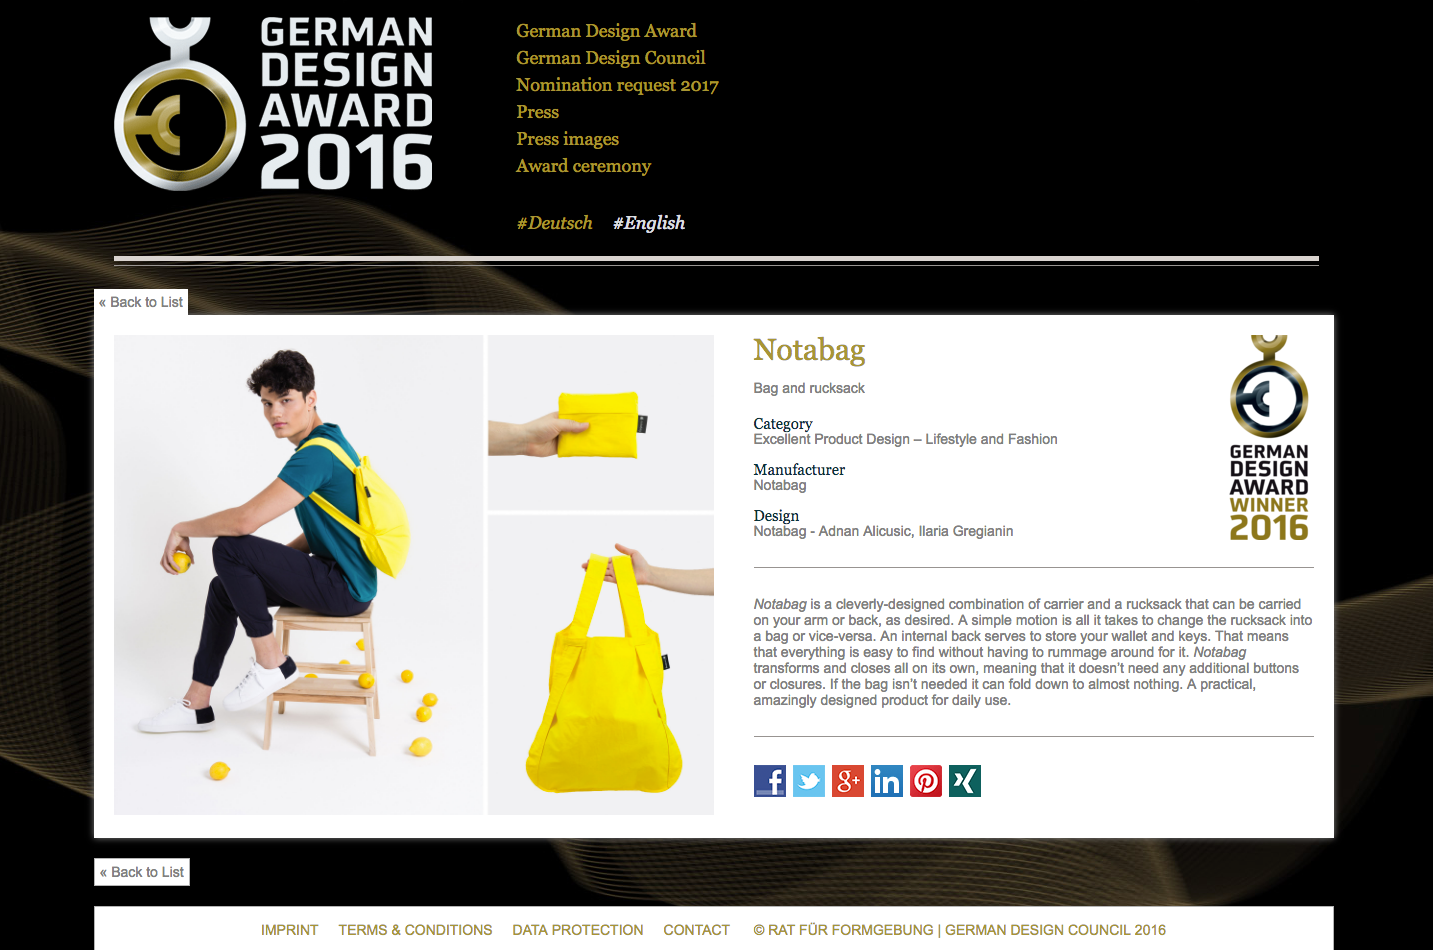 Notabag - German Design Award 2016 Winner